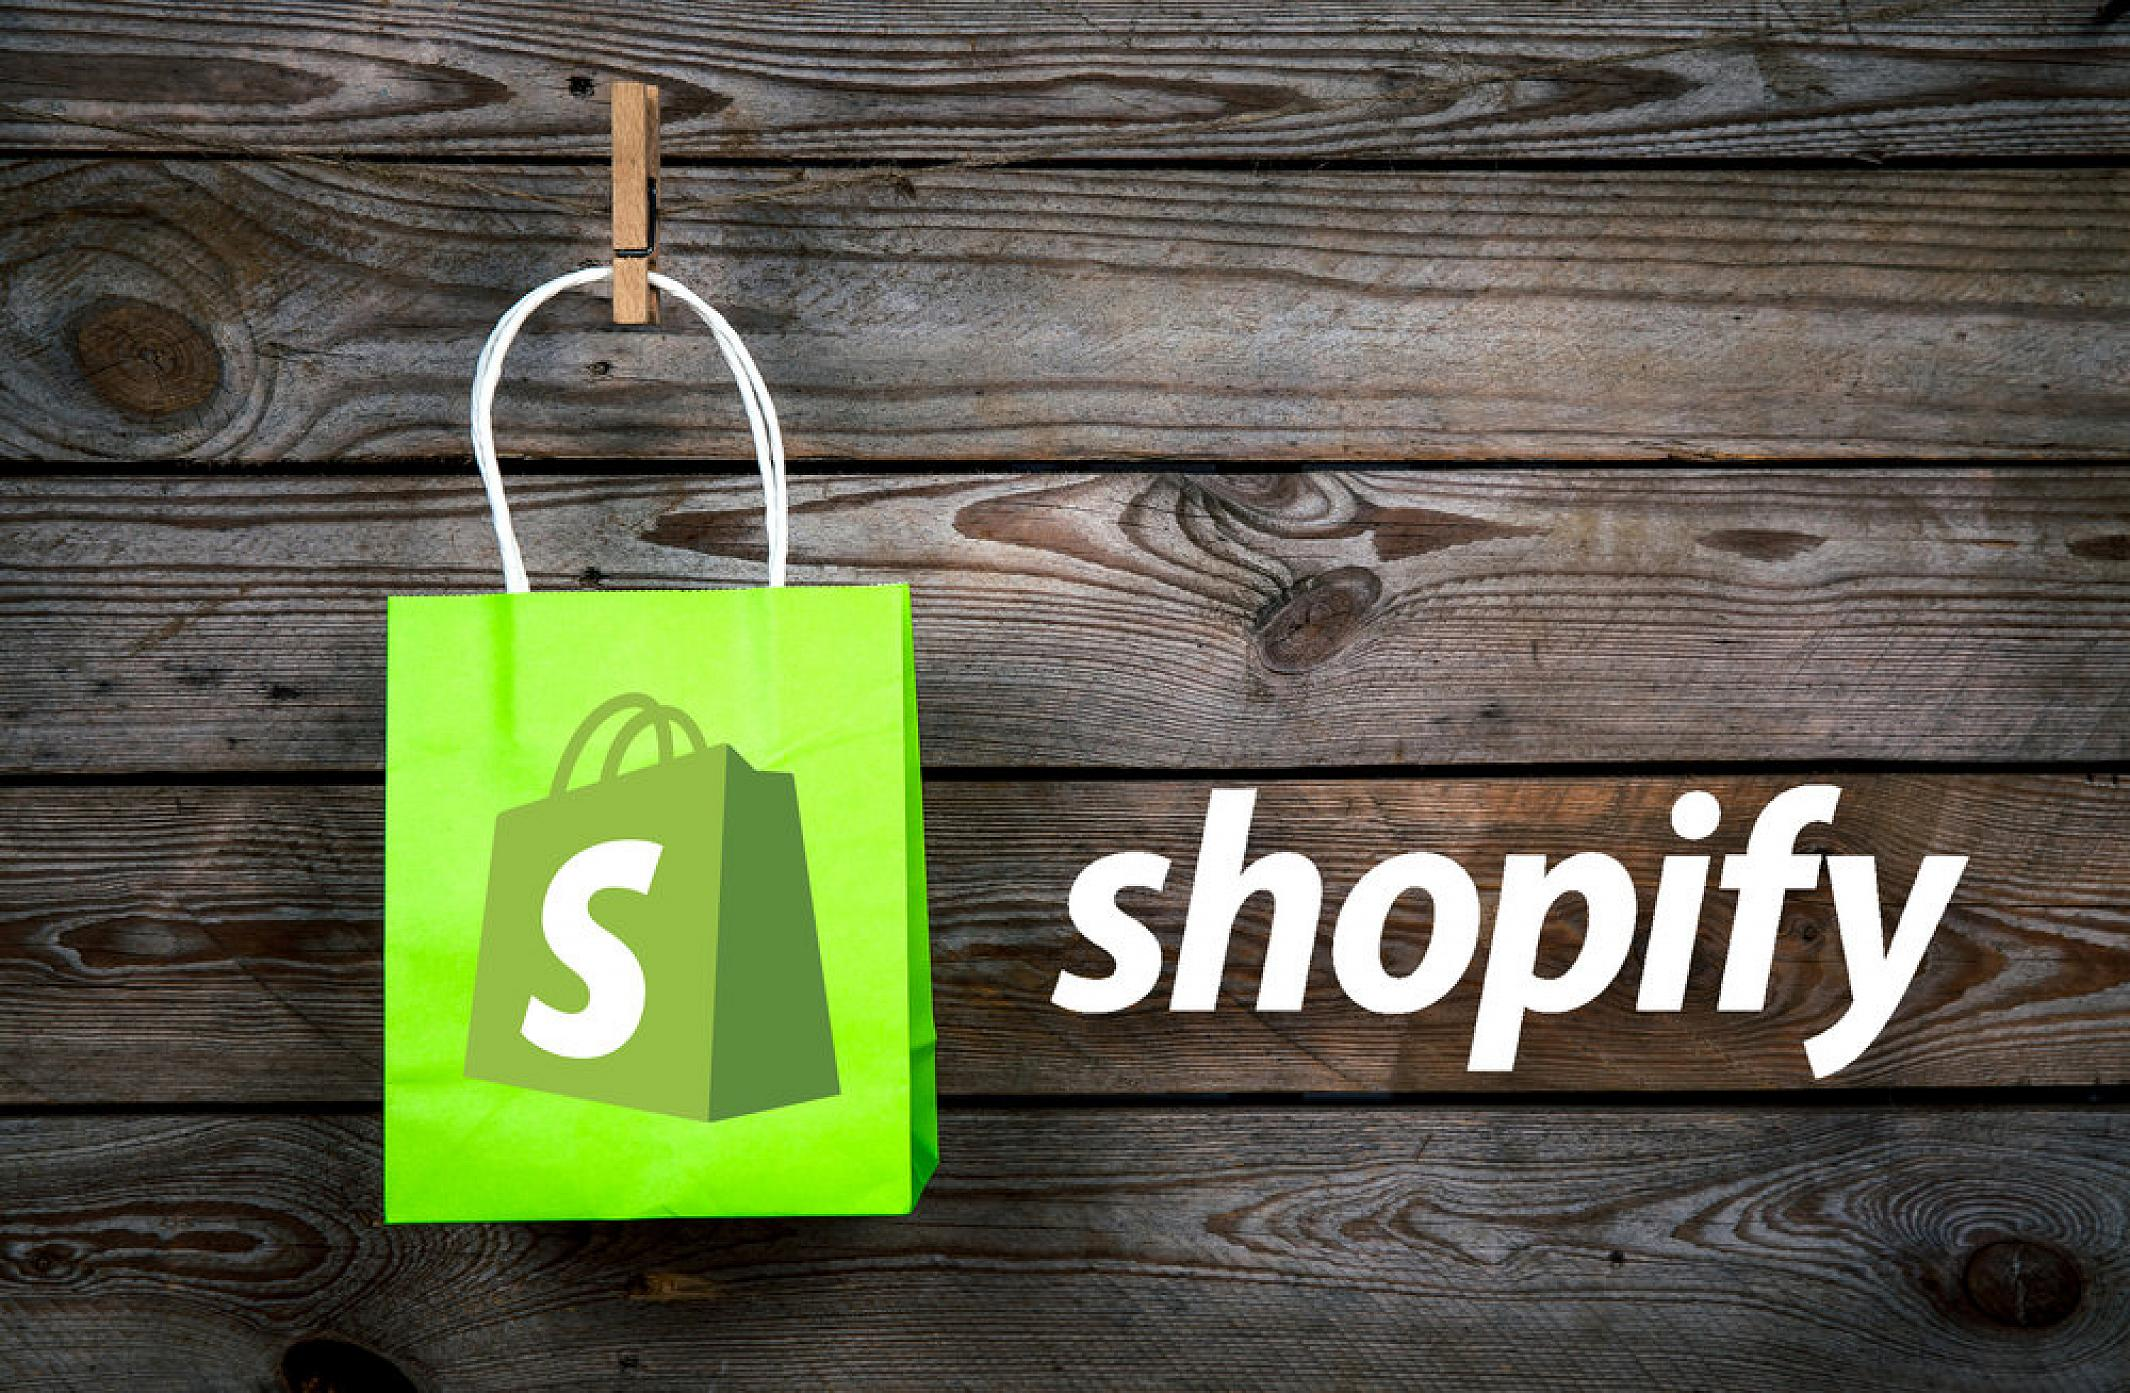 Shopify shops are down